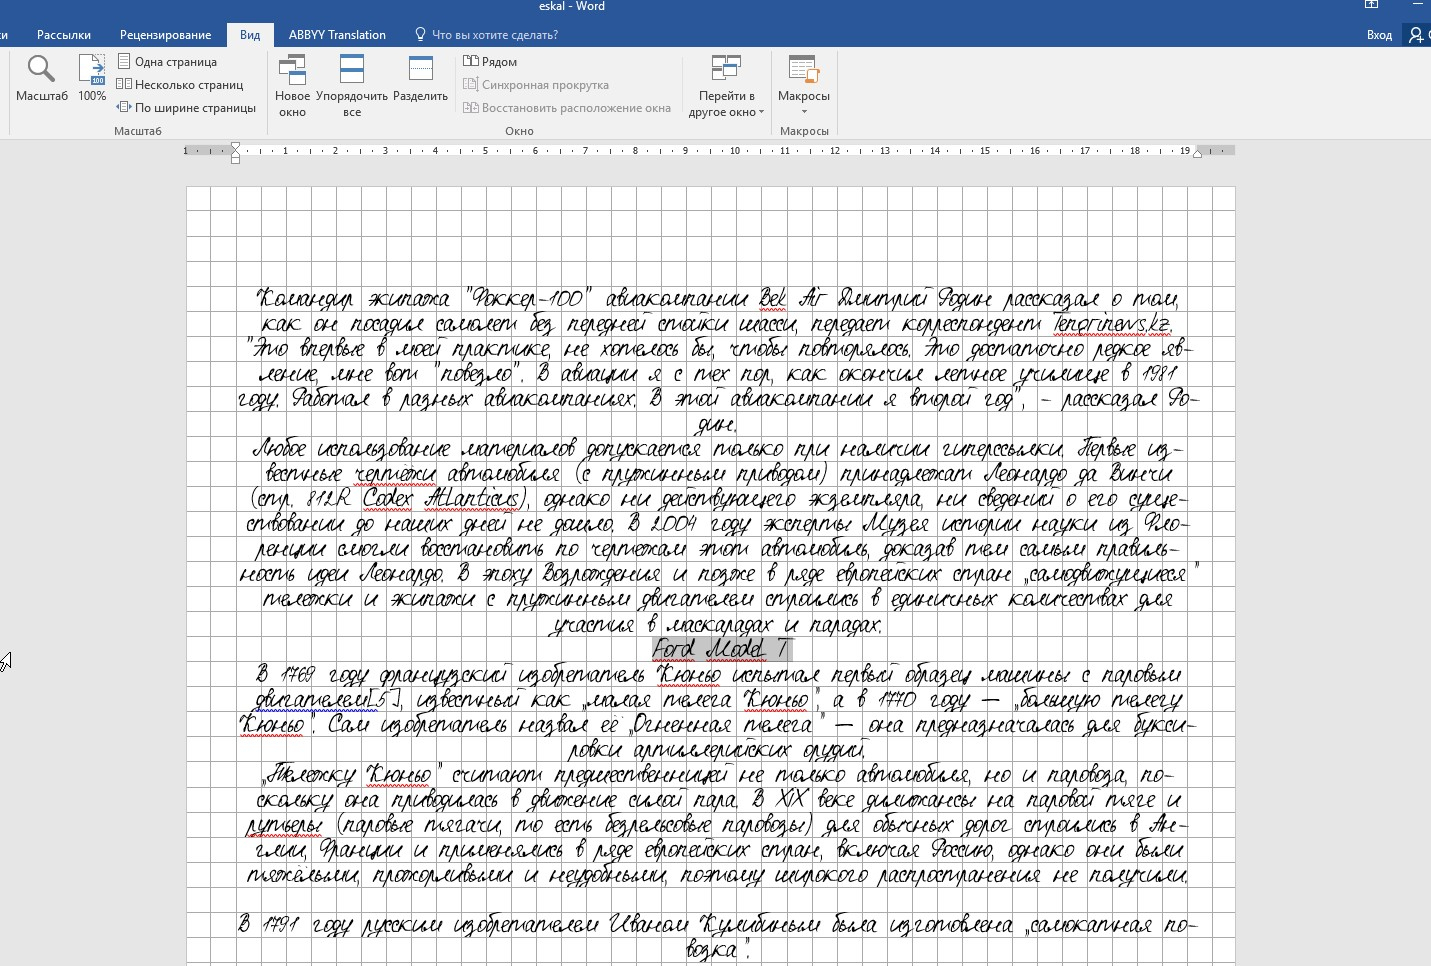 How To Print Microsoft Word's Gridlines? - Super User